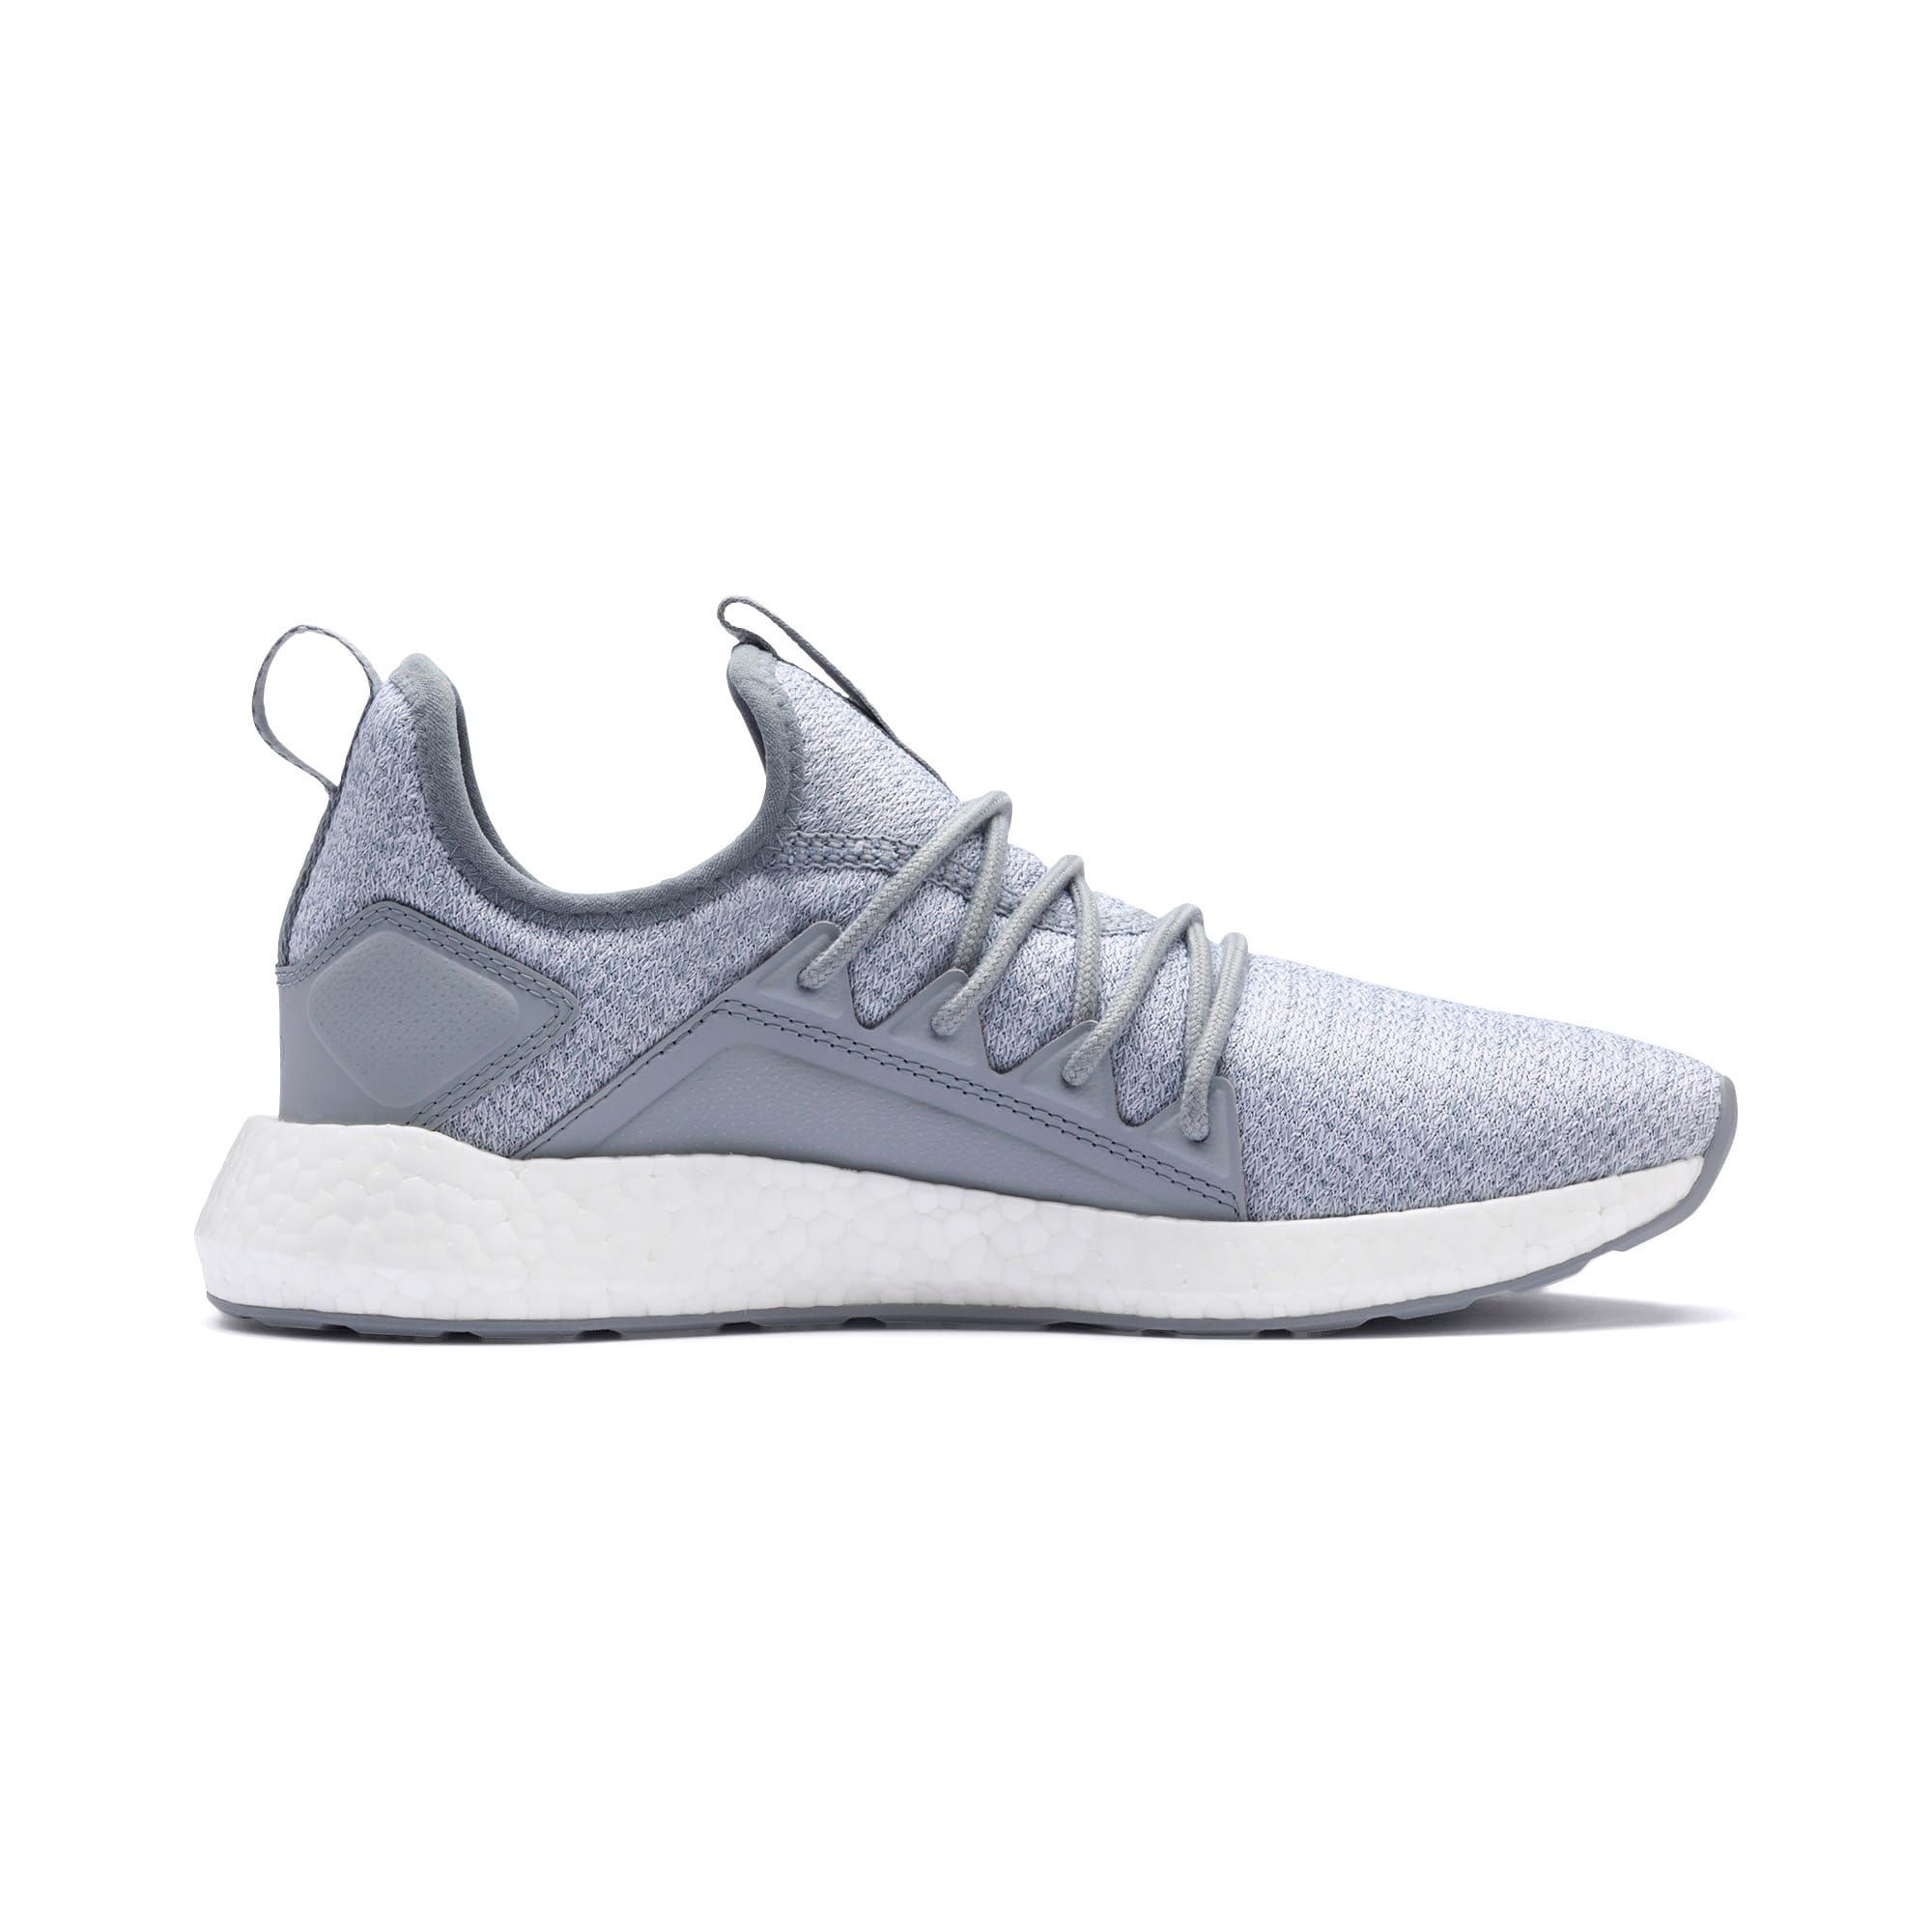 PUMA NRGY Neko Knit Women's Running Shoes in Quarry Grey